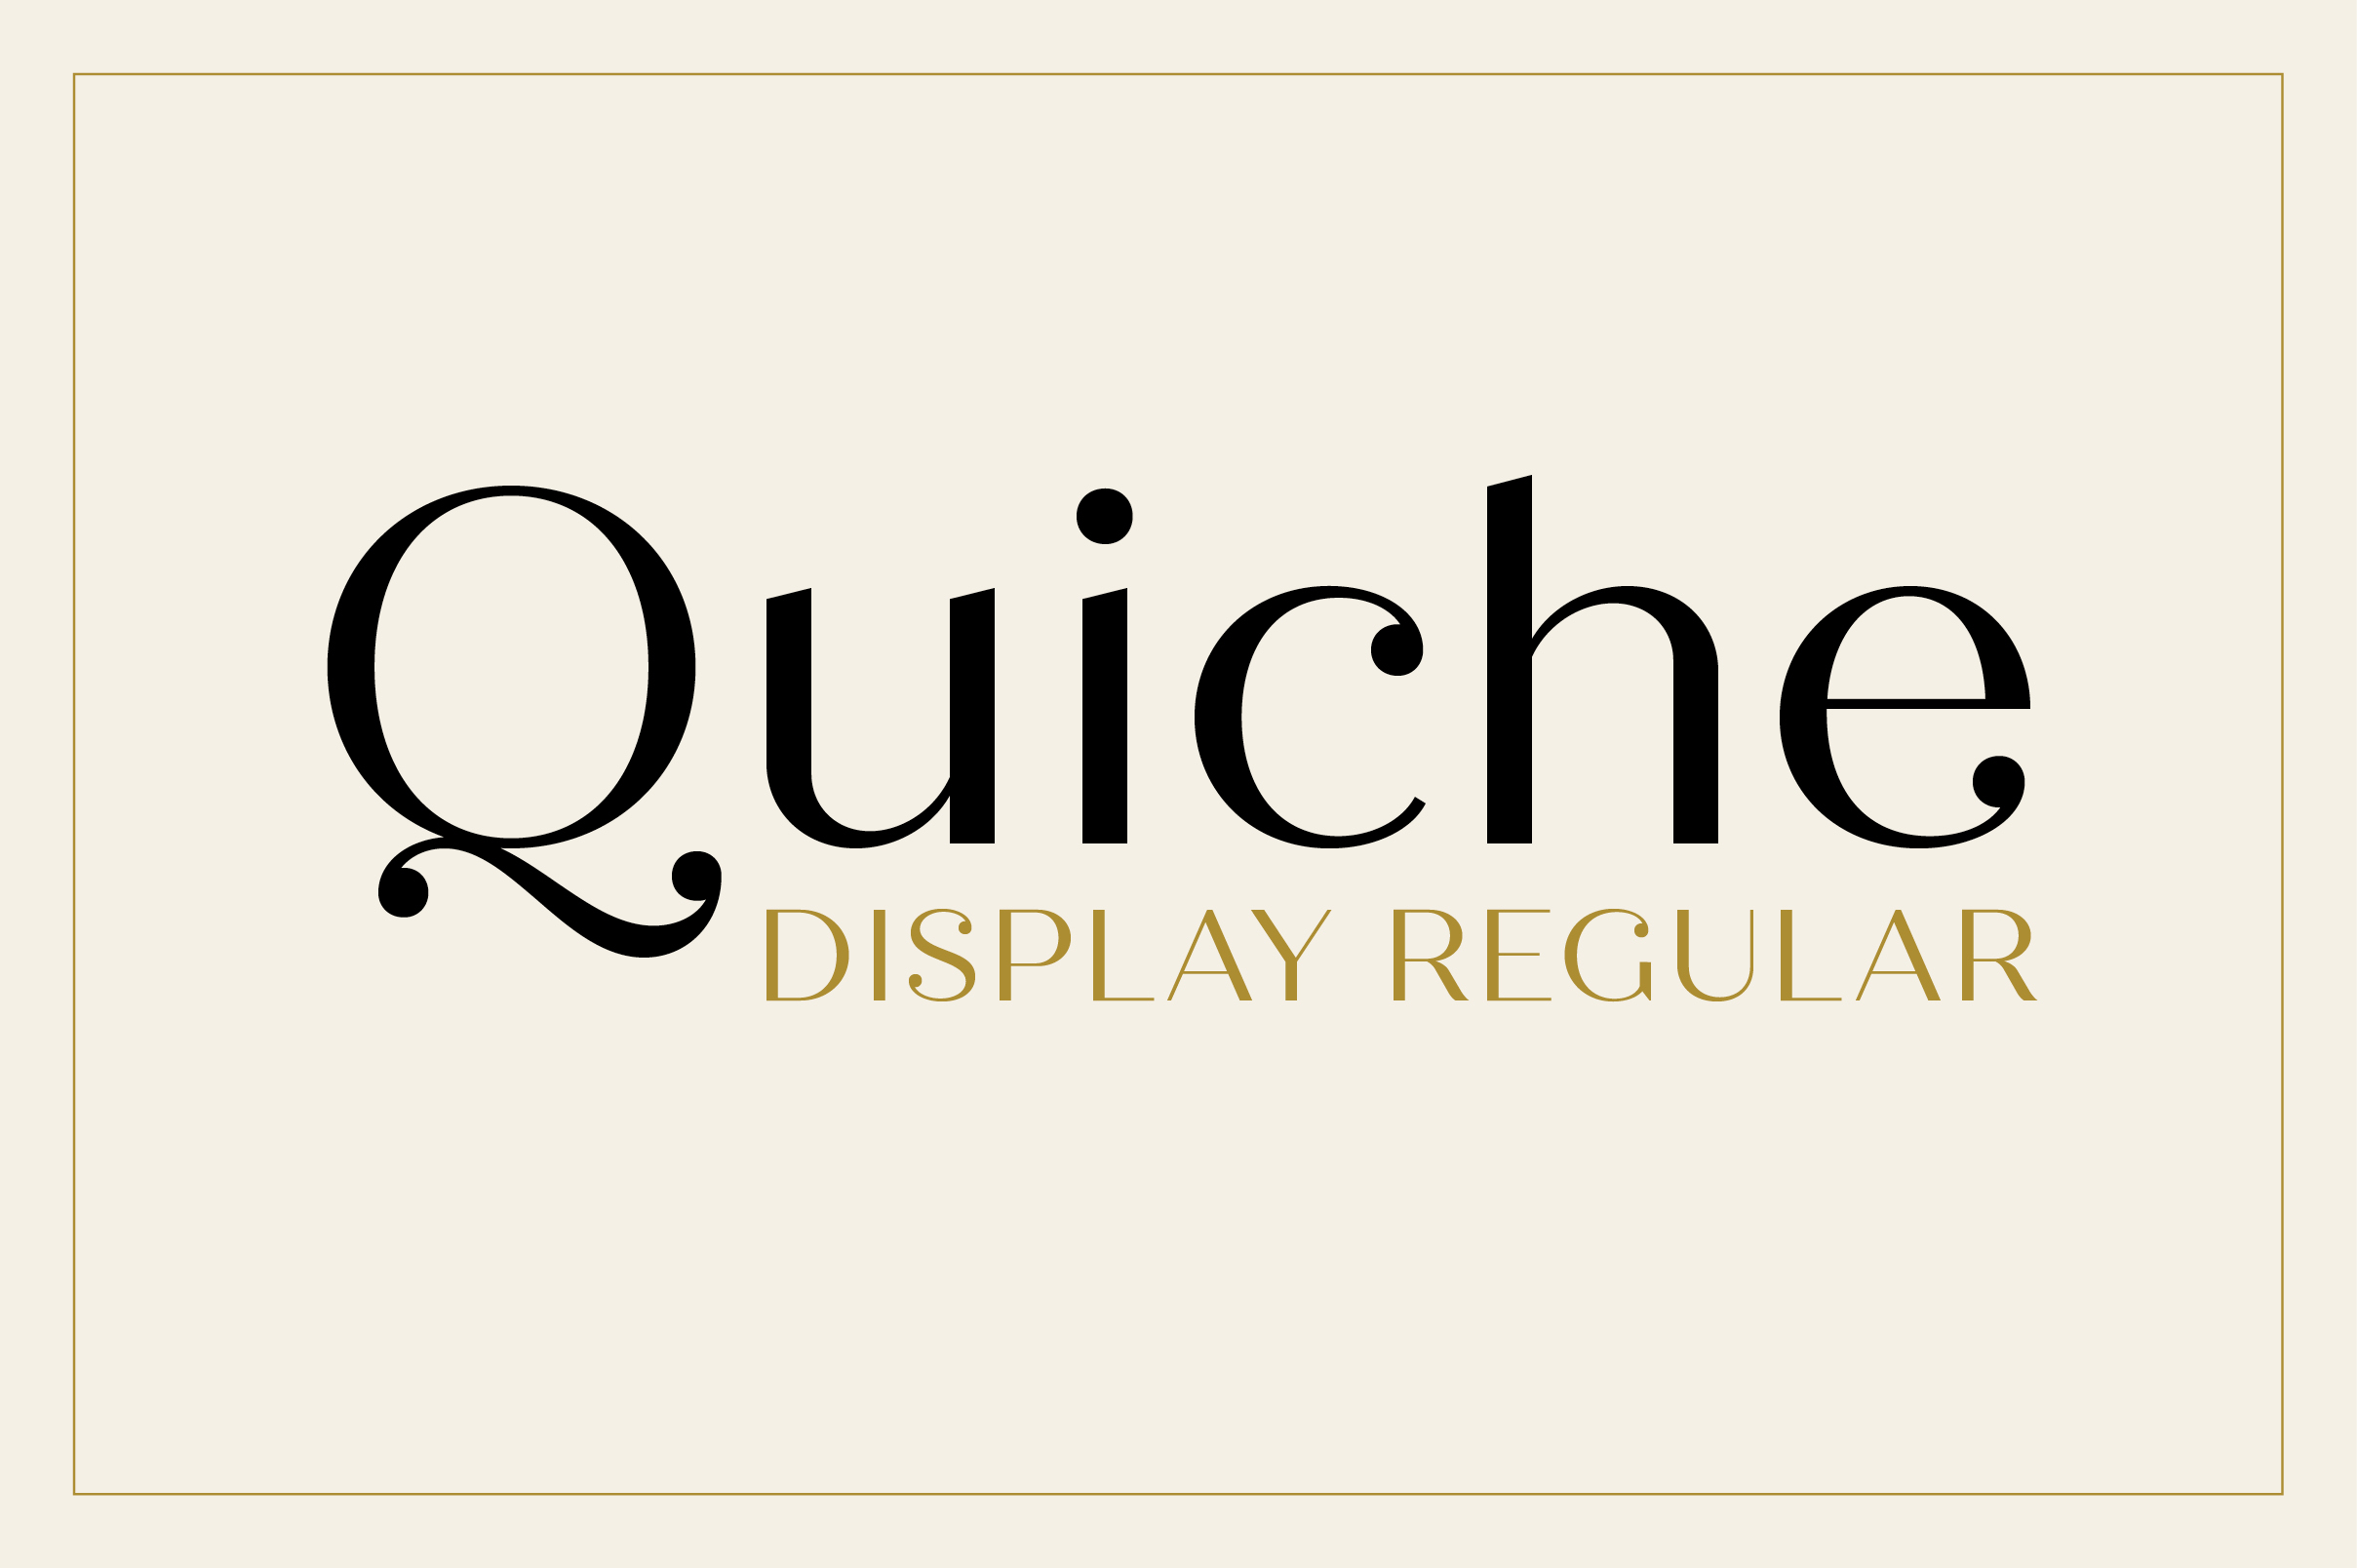 Quiche Display Regular Font example image 1